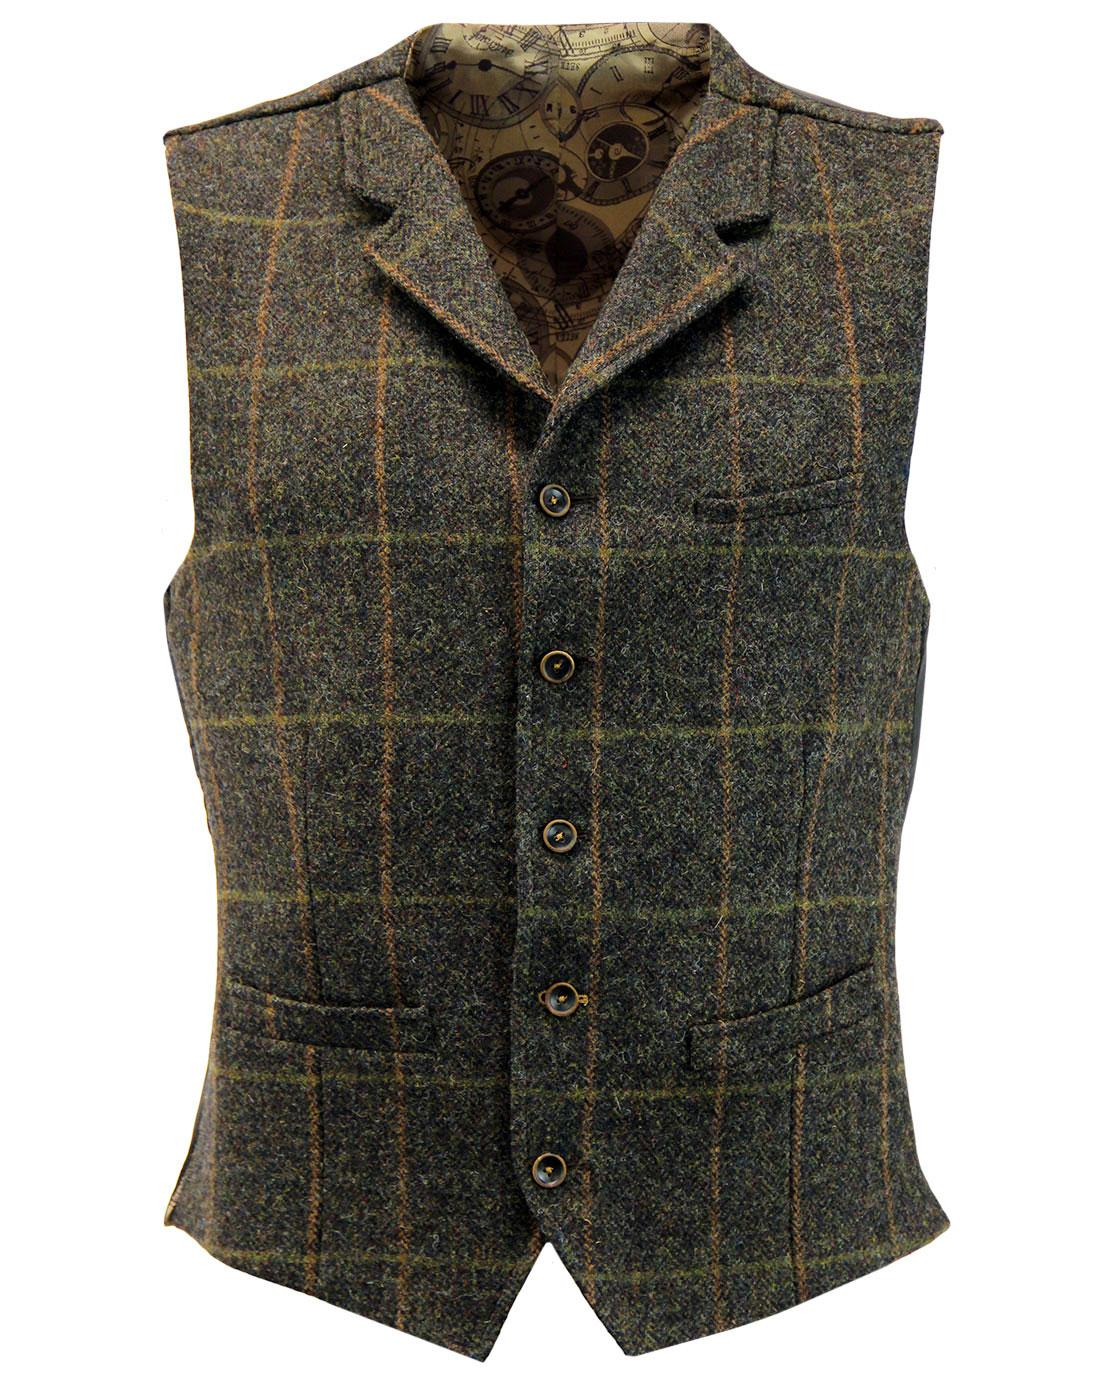 Tyburn GIBSON LONDON Herringbone Check Waistcoat